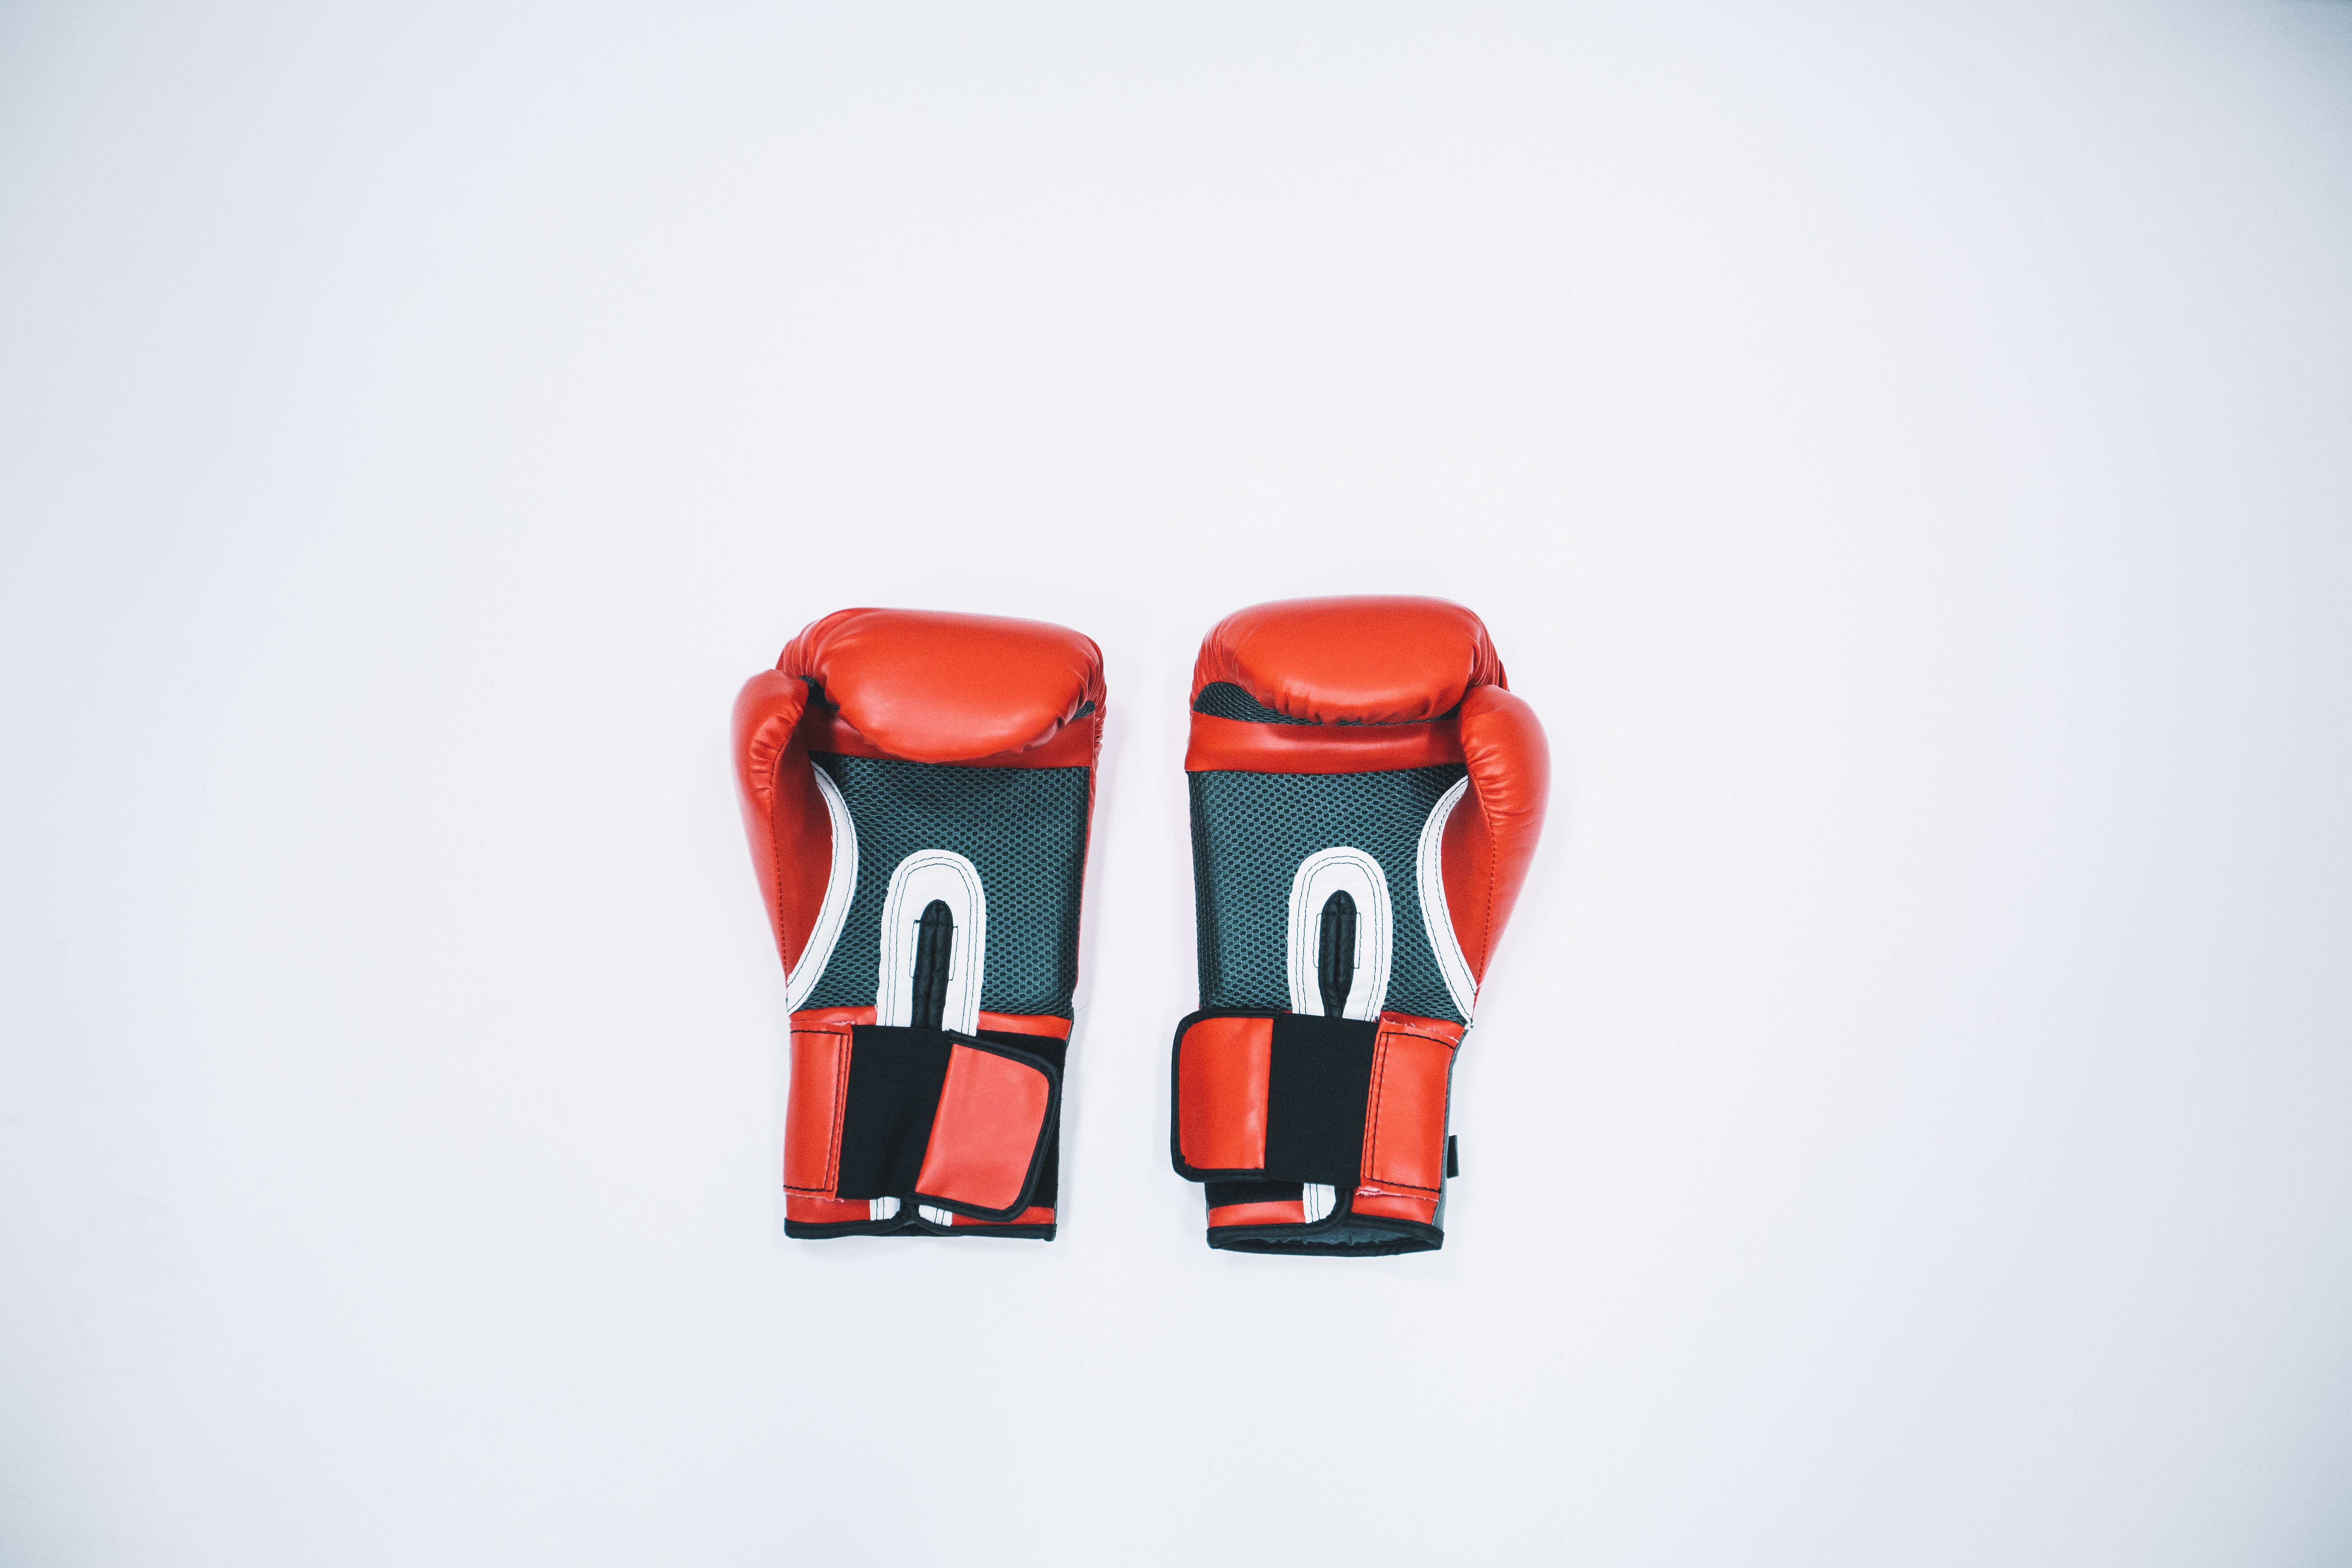 pair of red boxing gloves on white surface